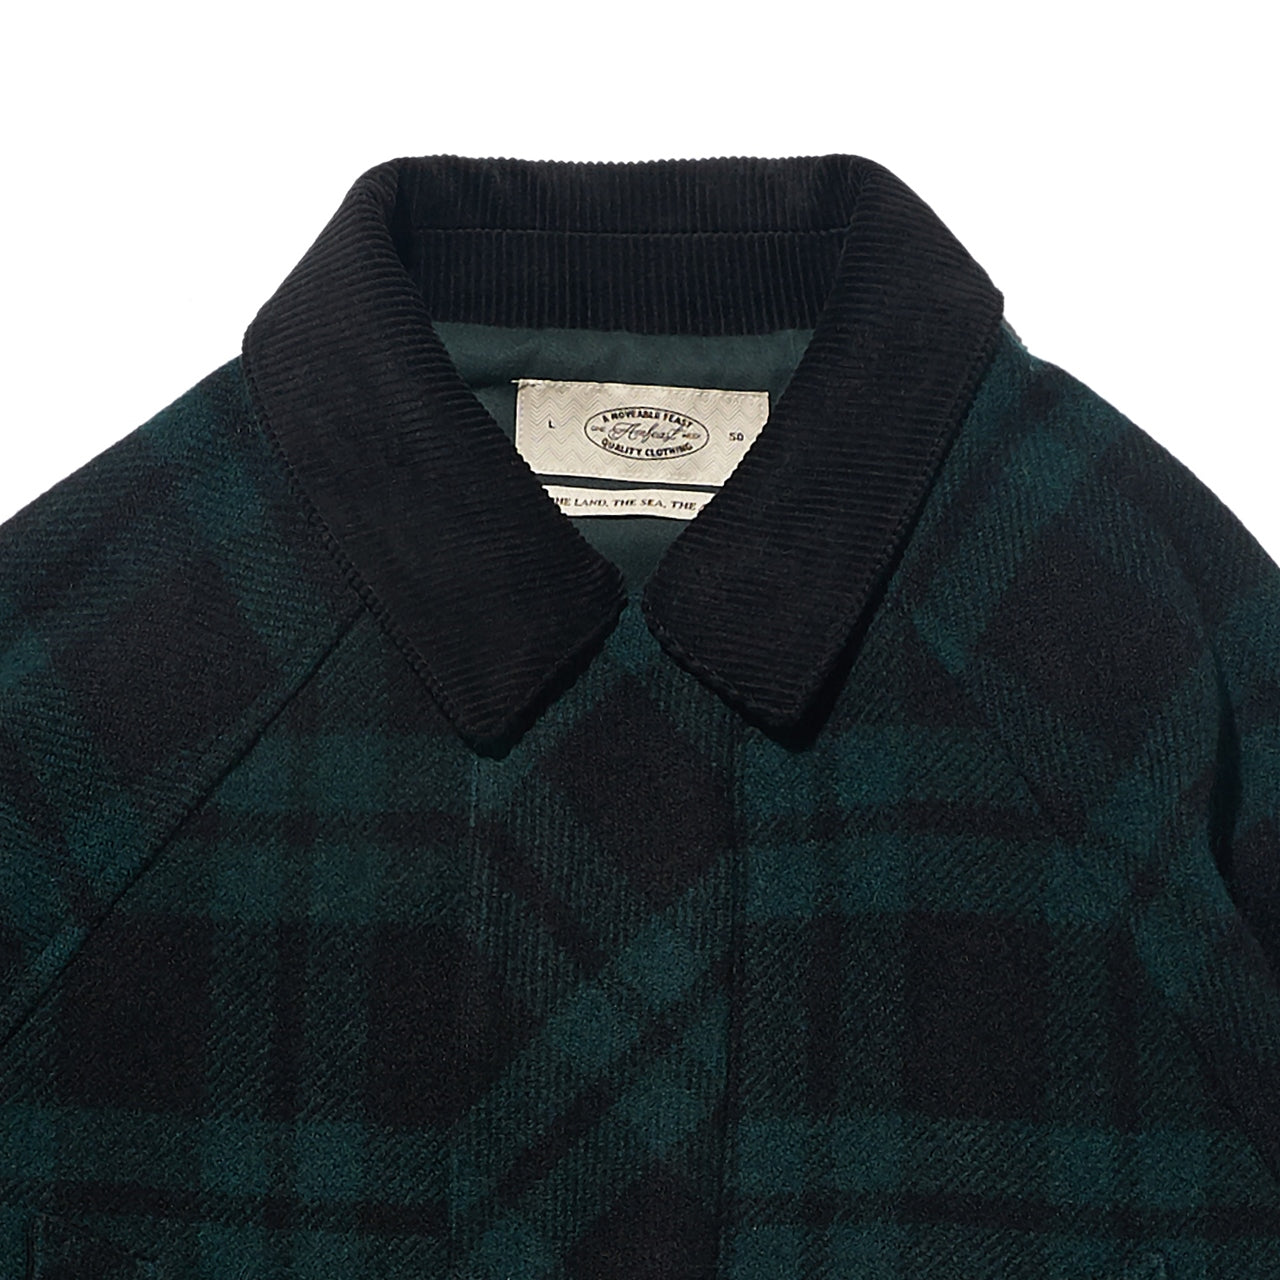 19 FW SIGNATURE CITY HALF COAT